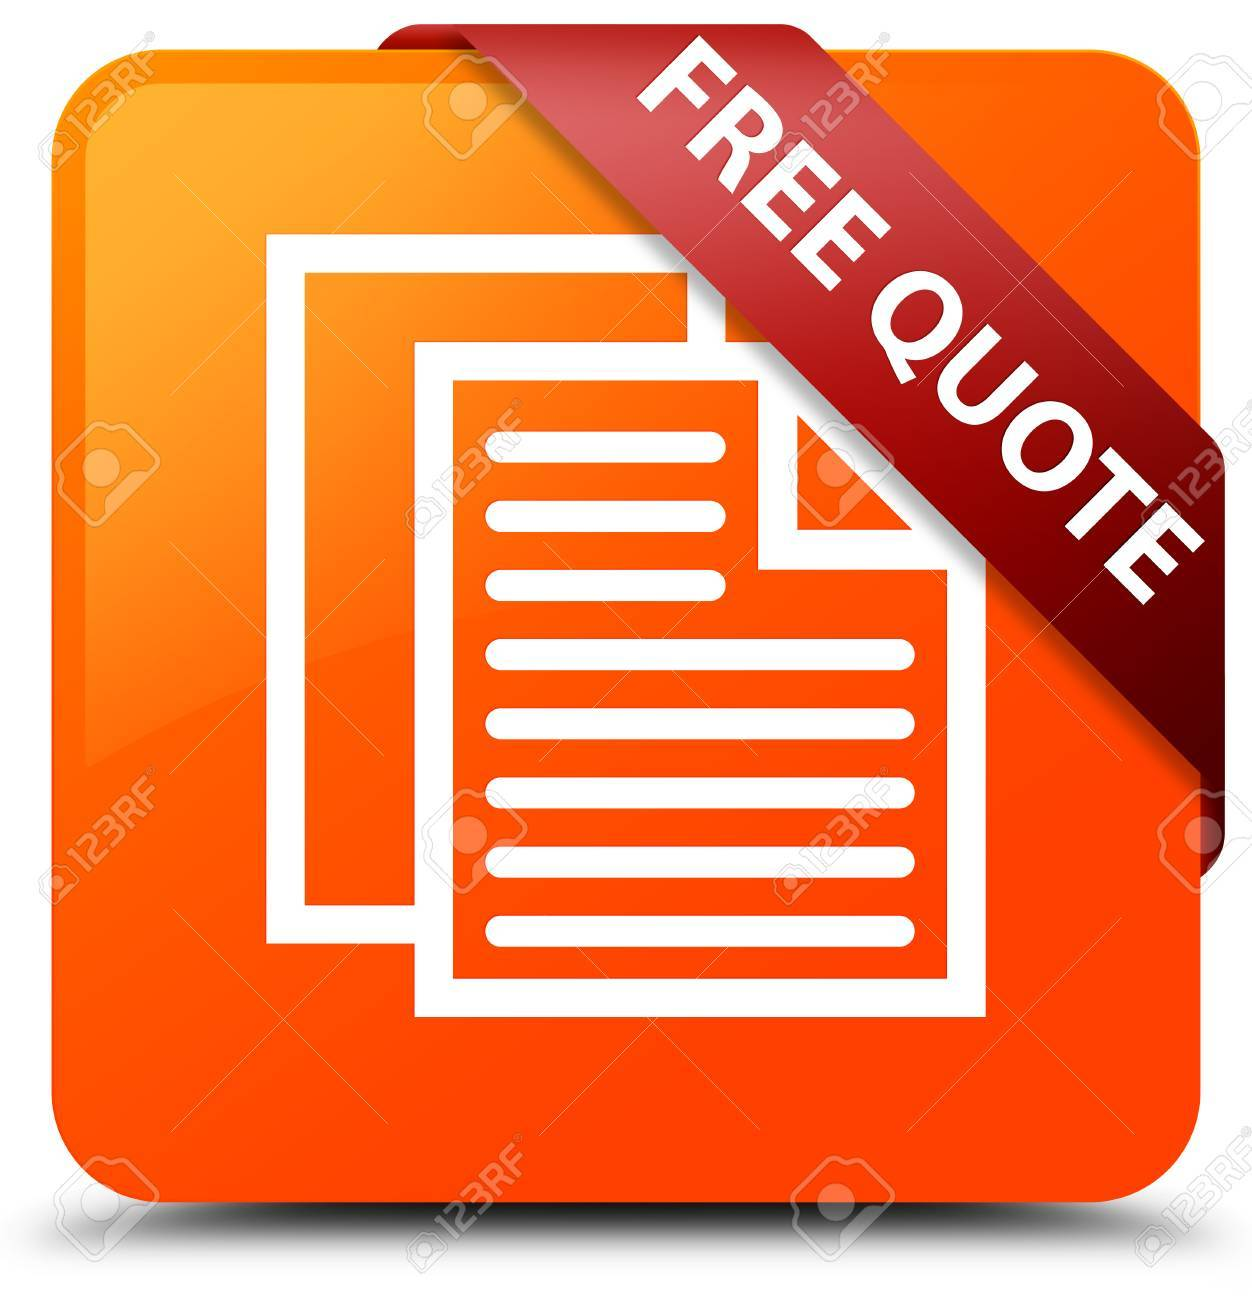 Free Qoute Free Quote Orange Square Button Stock Photo Picture And Royalty